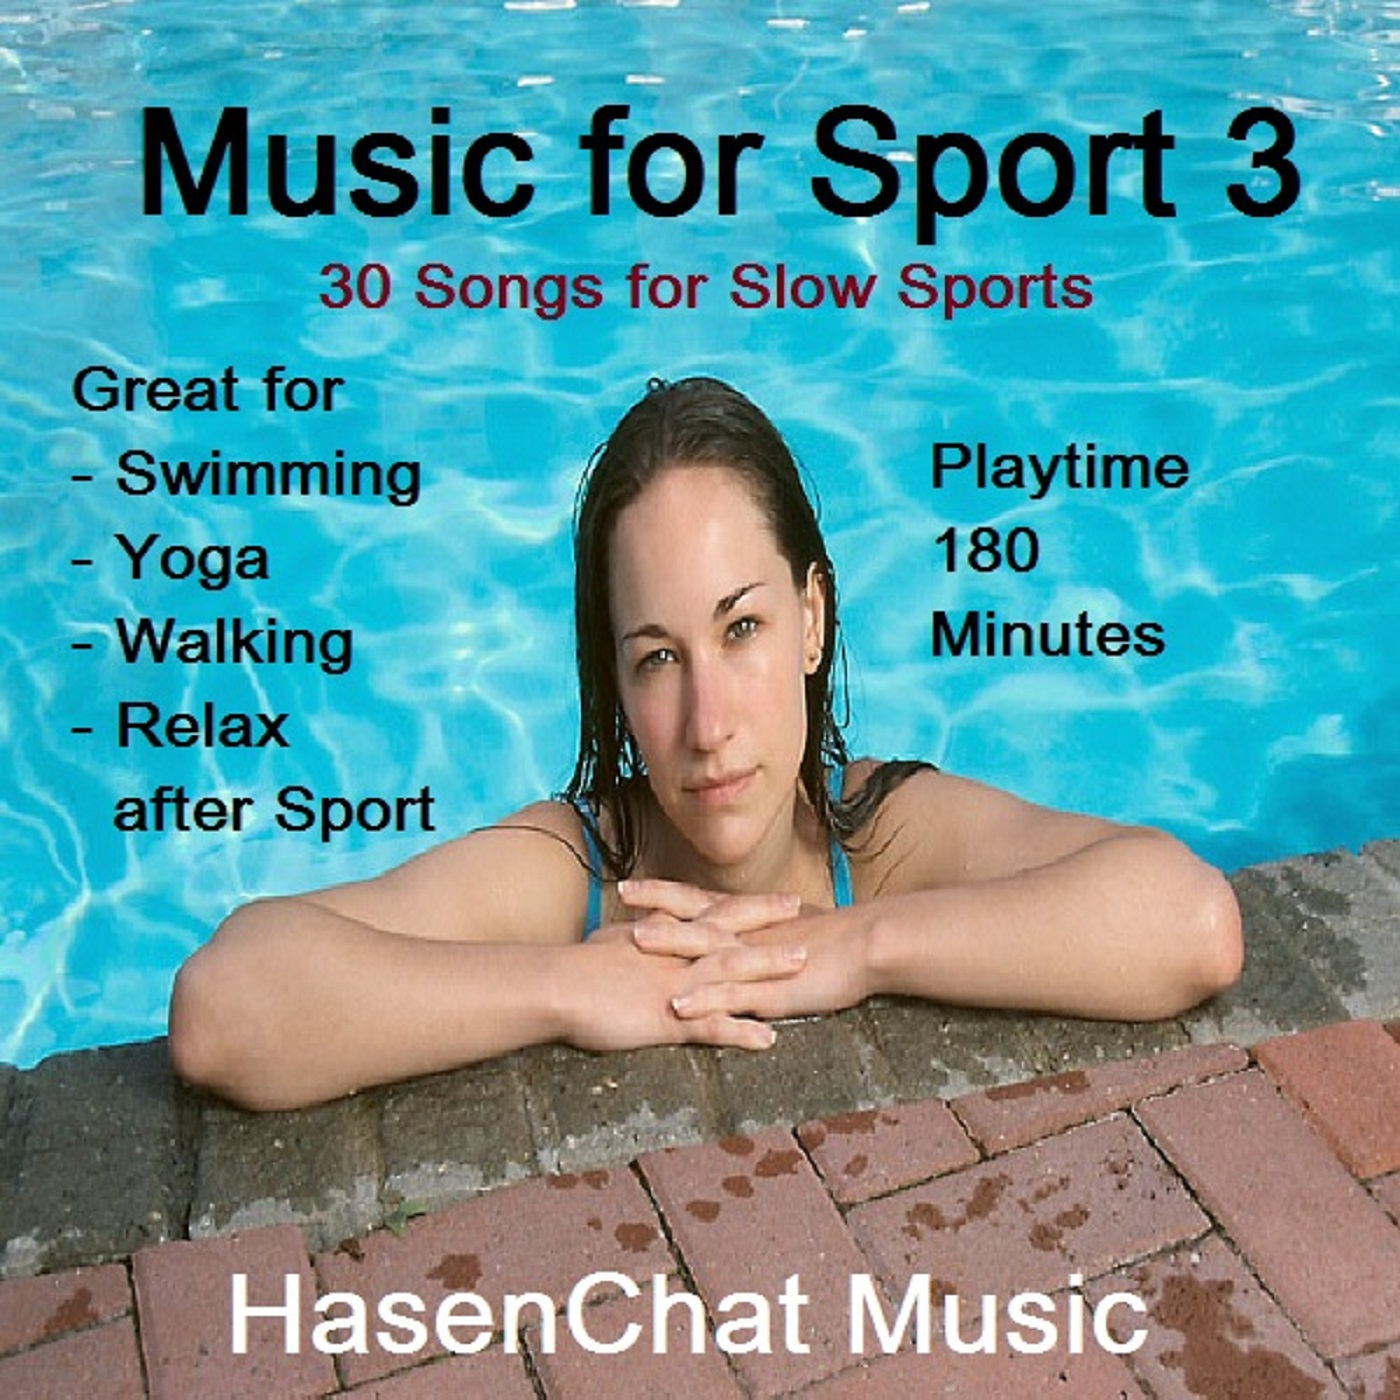 1400x1400 Music for Sport 3 Cover